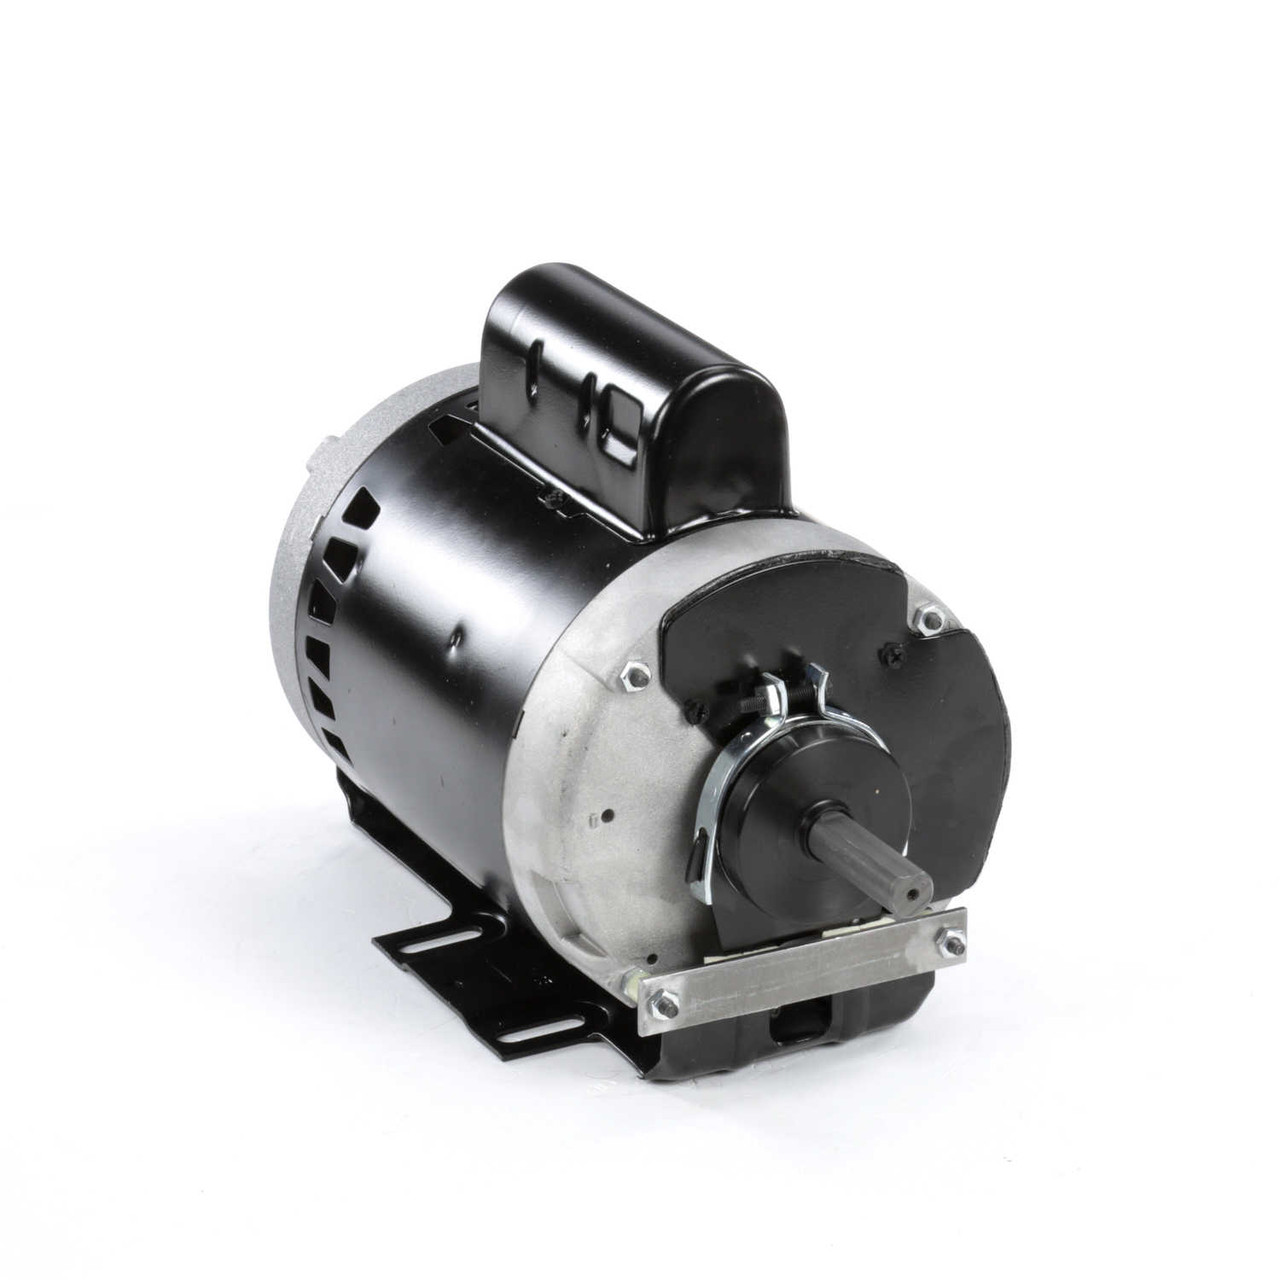 small resolution of kramer trenton condenser fan motor 3 4 hp 1075 rpm 208 230 460v century c662